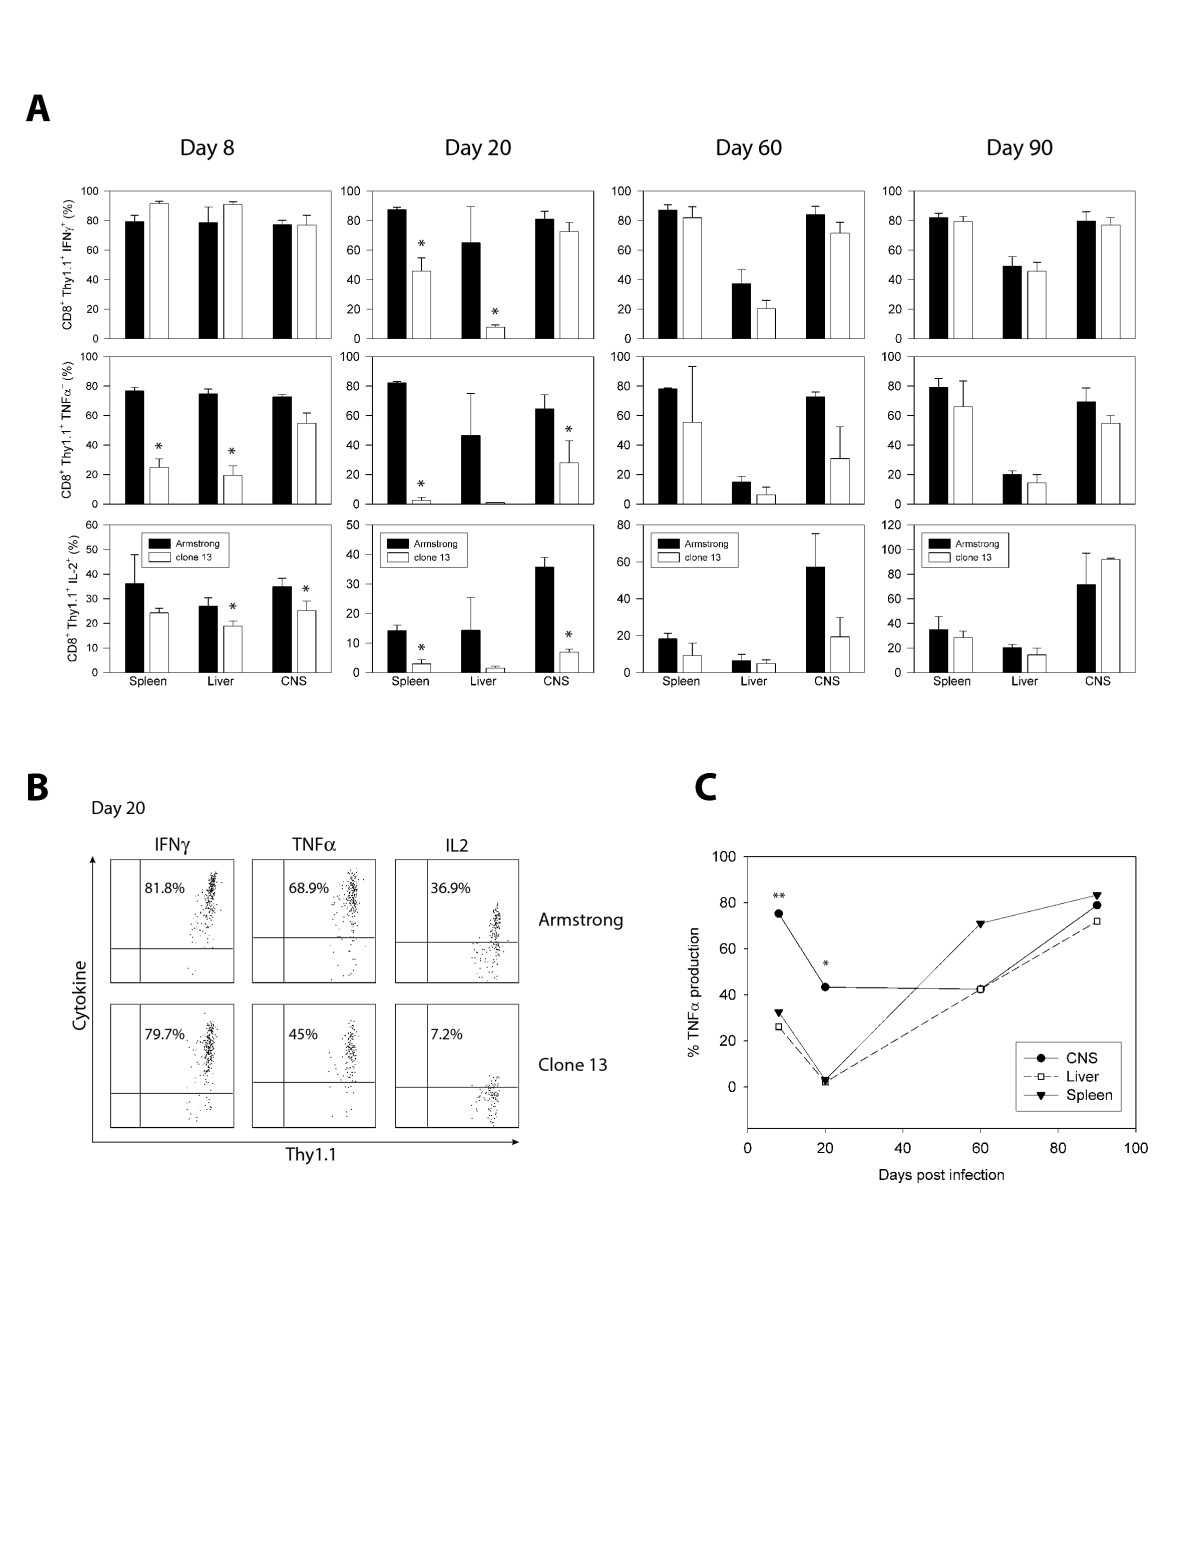 https://static-content.springer.com/image/art%3A10.1186%2F1743-422X-4-53/MediaObjects/12985_2007_Article_266_Fig5_HTML.jpg